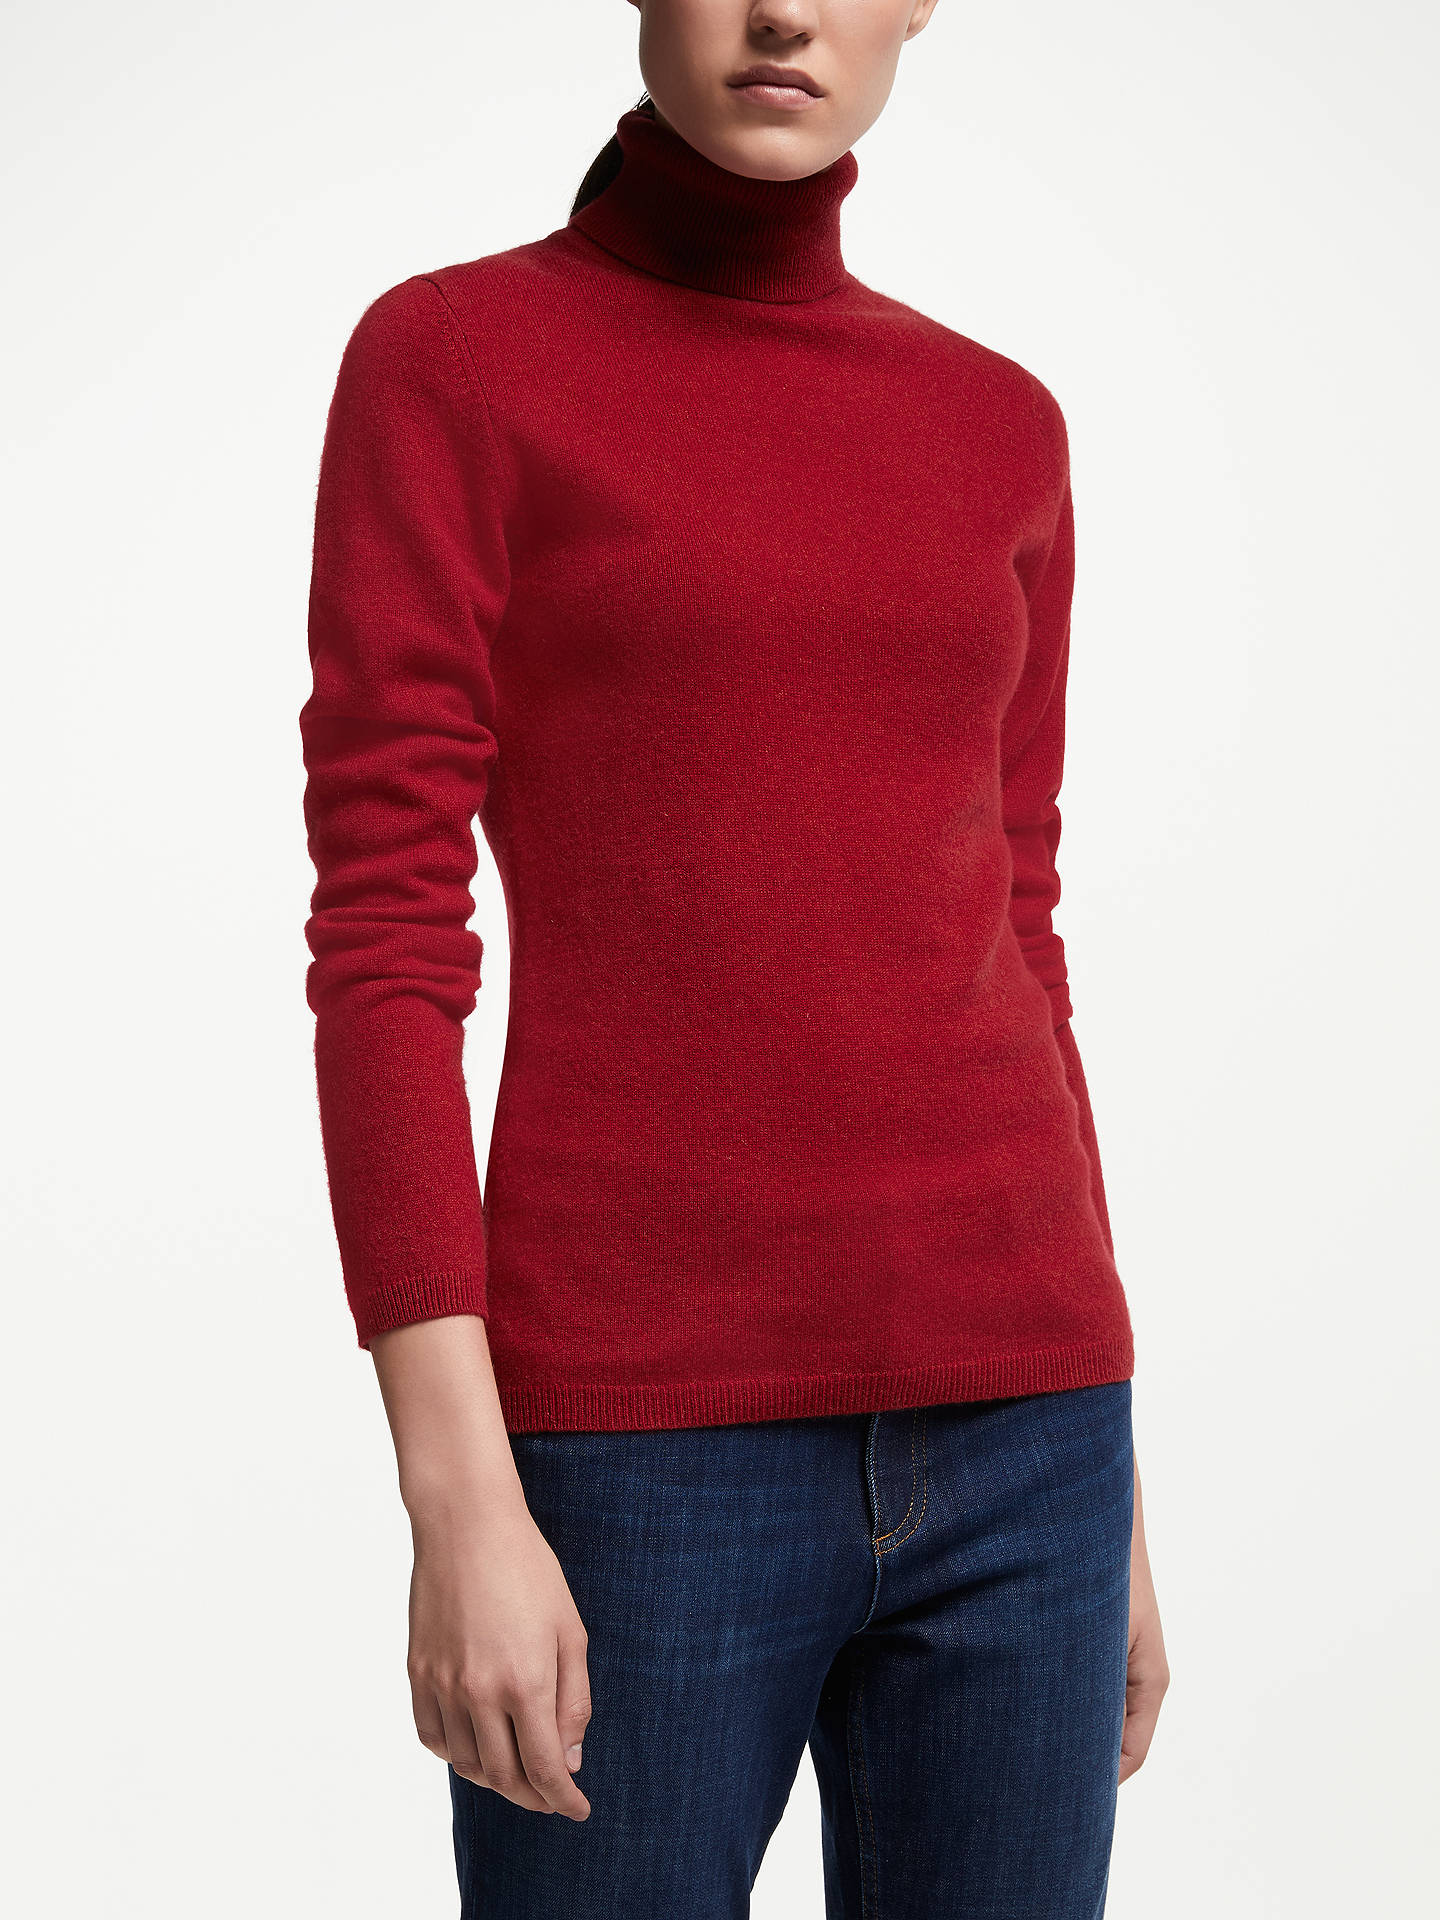 BuyJohn Lewis & Partners Cashmere Roll Neck Jumper, Red, 8 Online at johnlewis.com